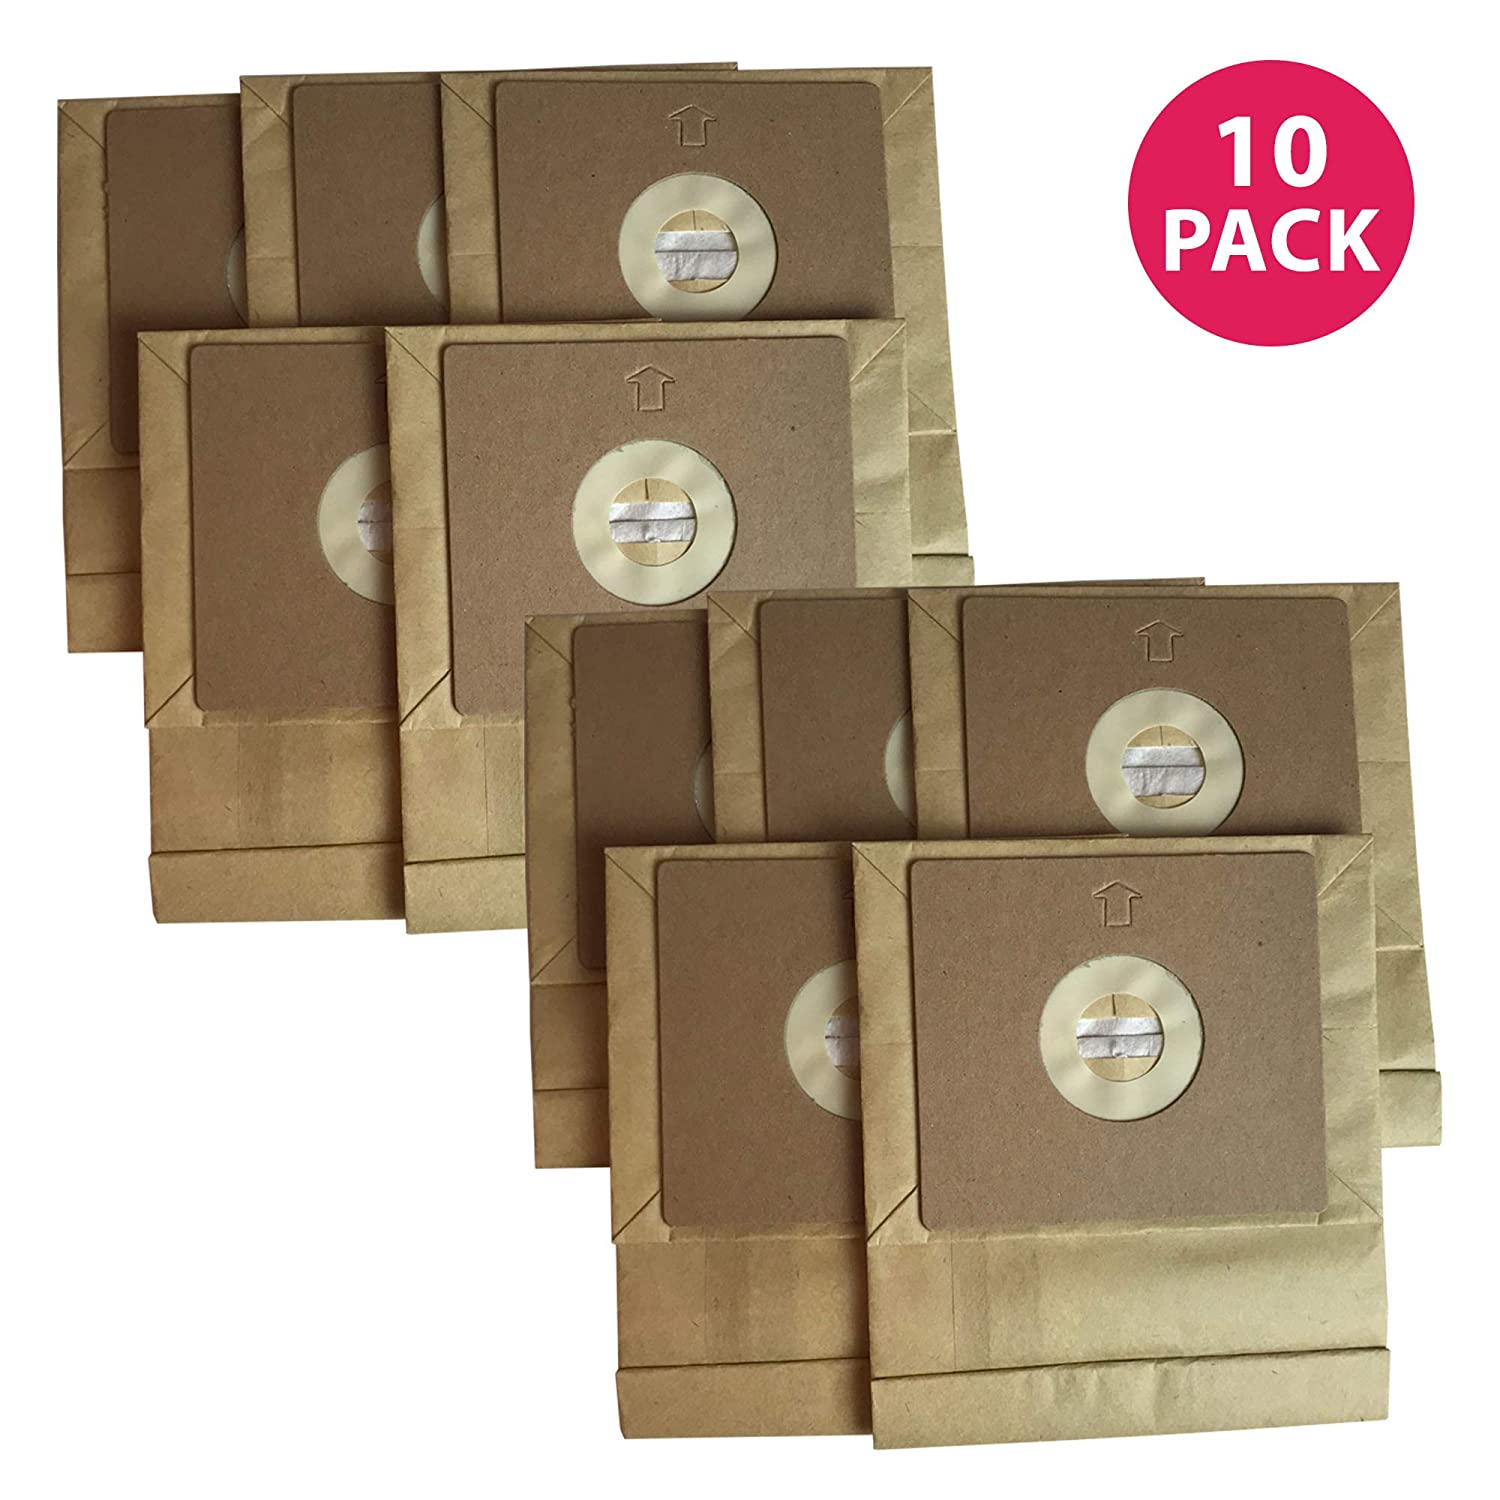 Crucial Vacuum Replacement Vac Bags - Compatible with Bissell Part # 3210 - Bissell Bags Fit 7100 & 7100L Models - Compact, Bag for Pre-Motor, Post-Motor Filters - Quickly Replaces, Holds (10 Pack)